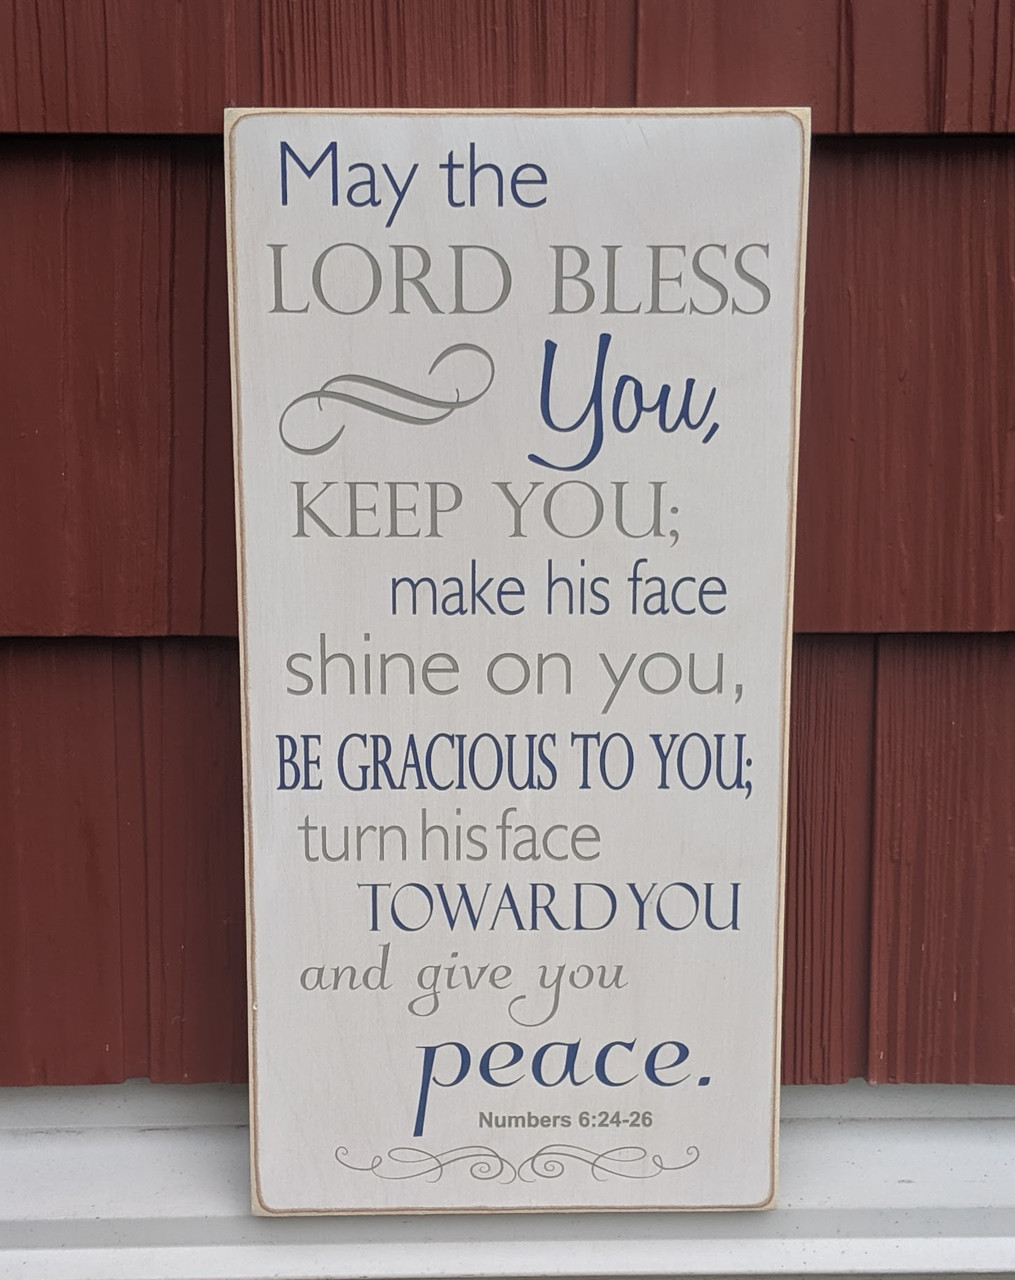 May the Lord Bless You Keep You make His face shine on you - wood sign